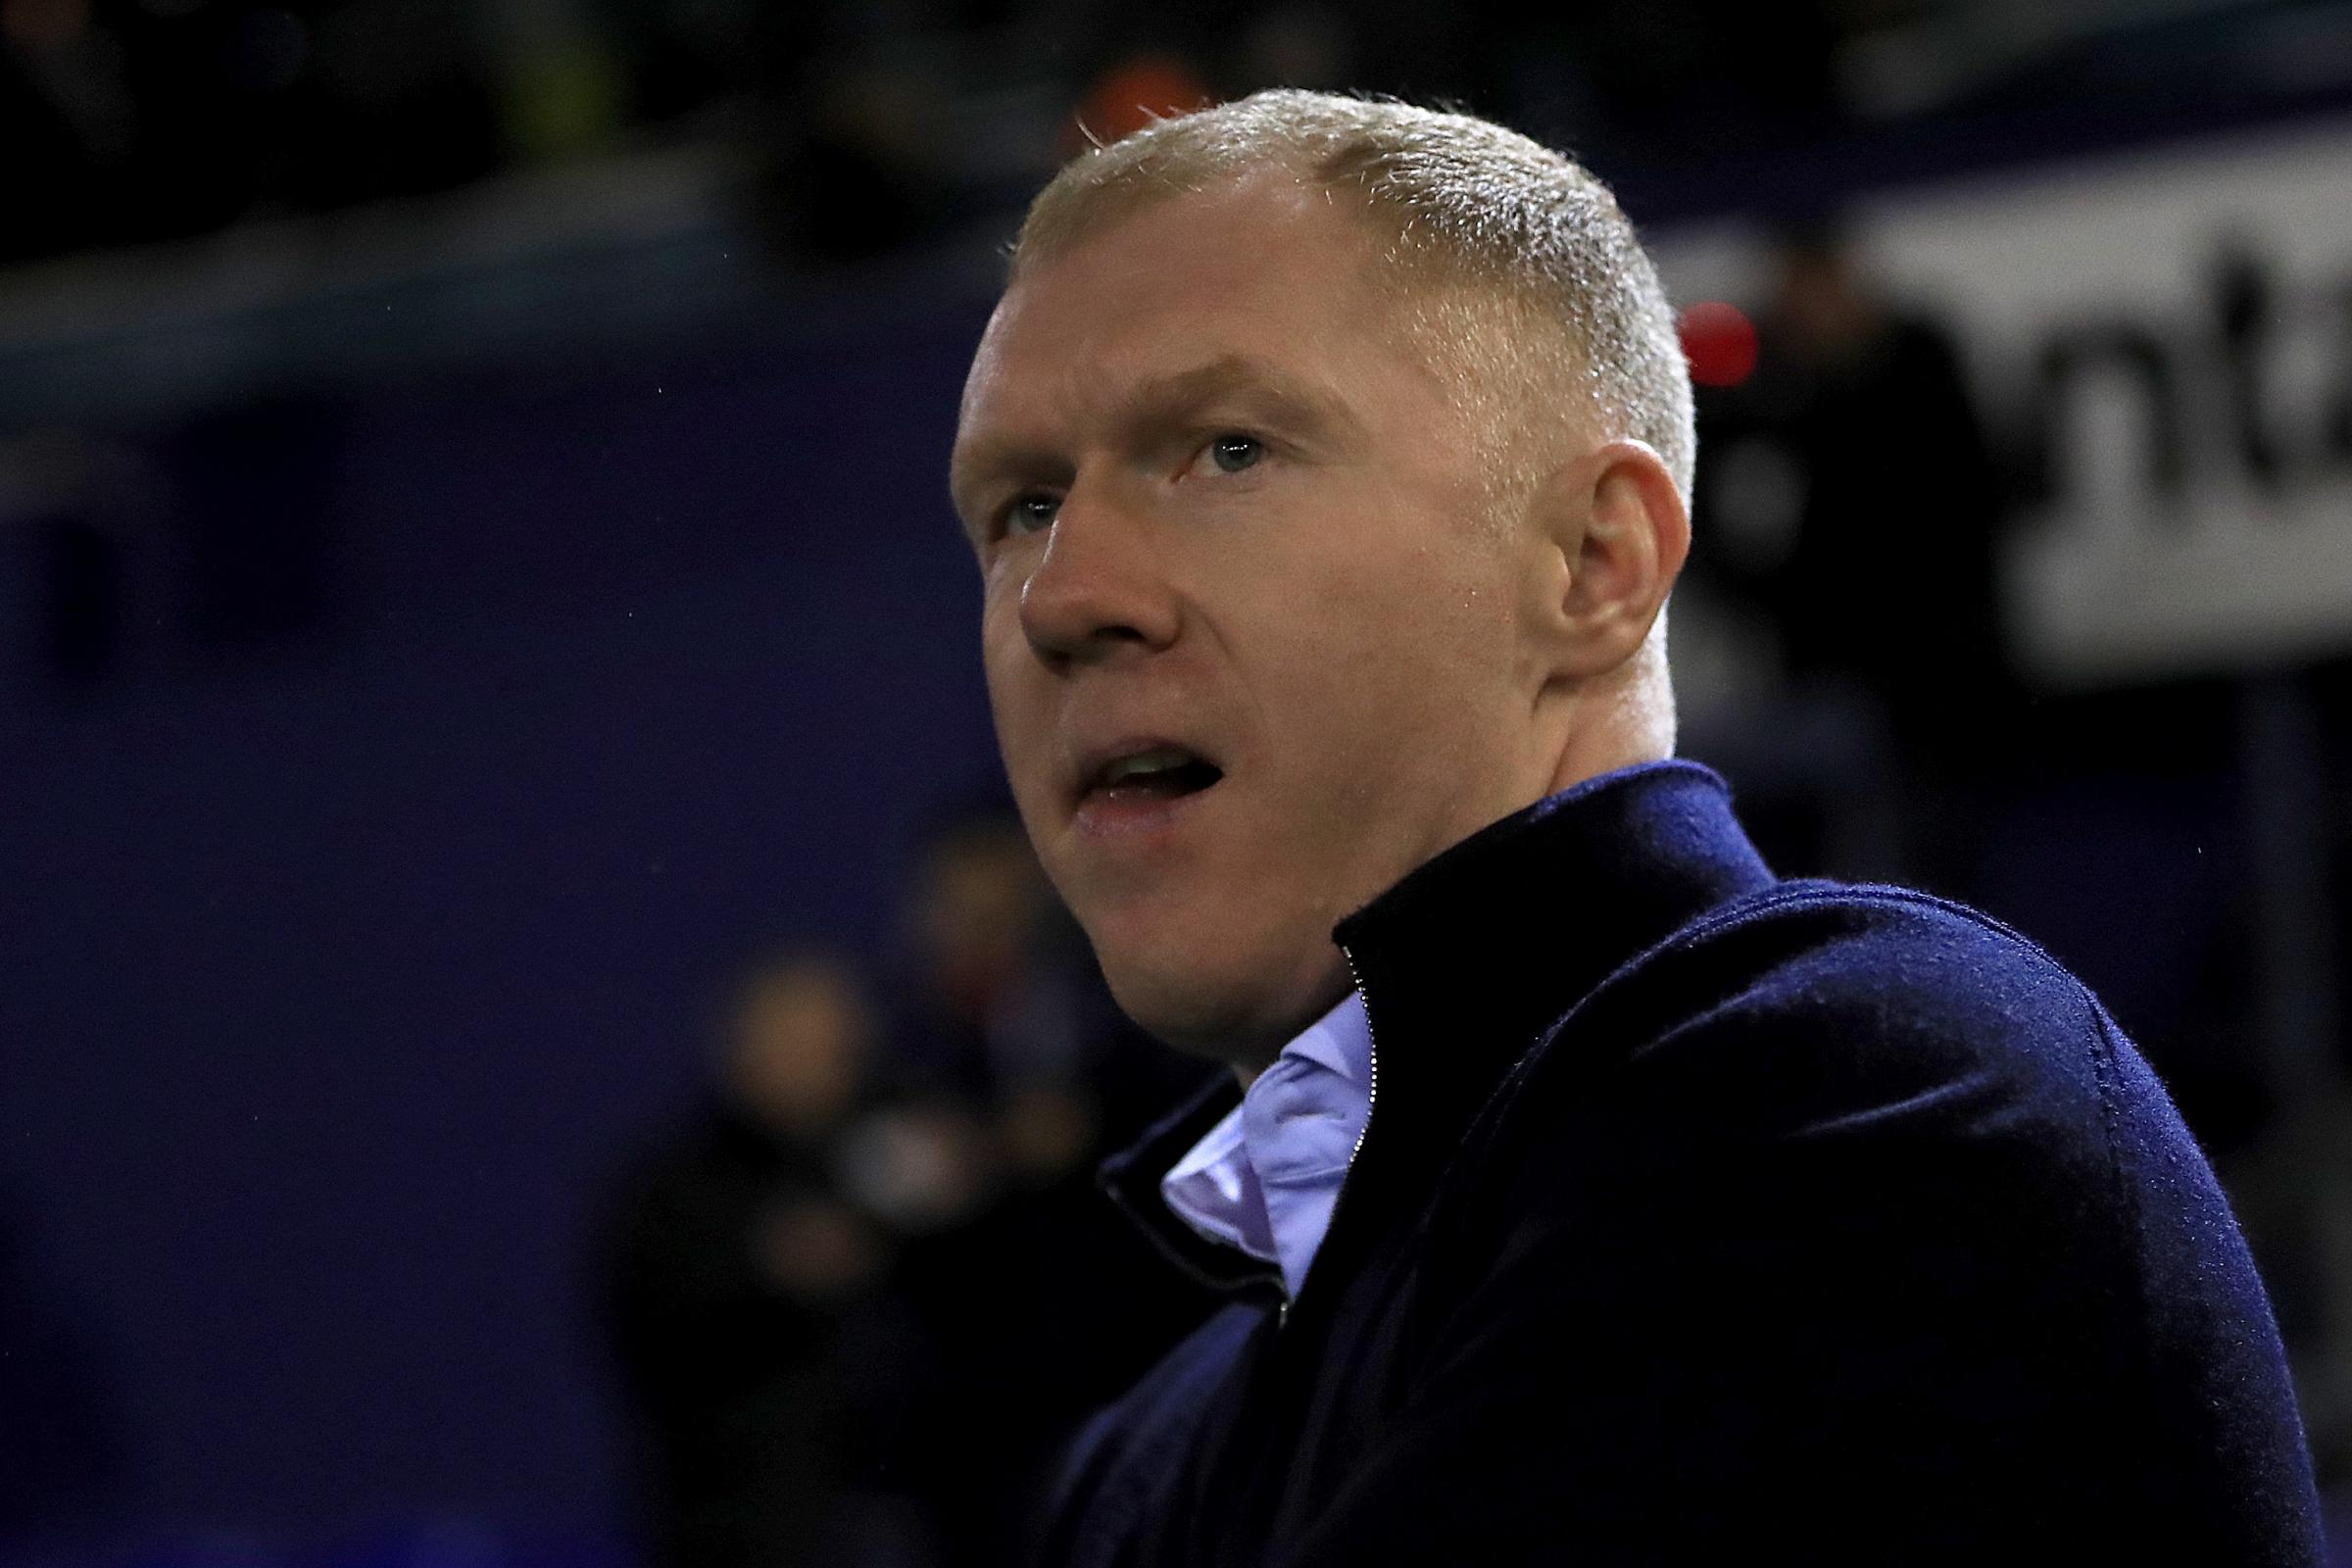 Paul Scholes has stepped down as manager of Oldham